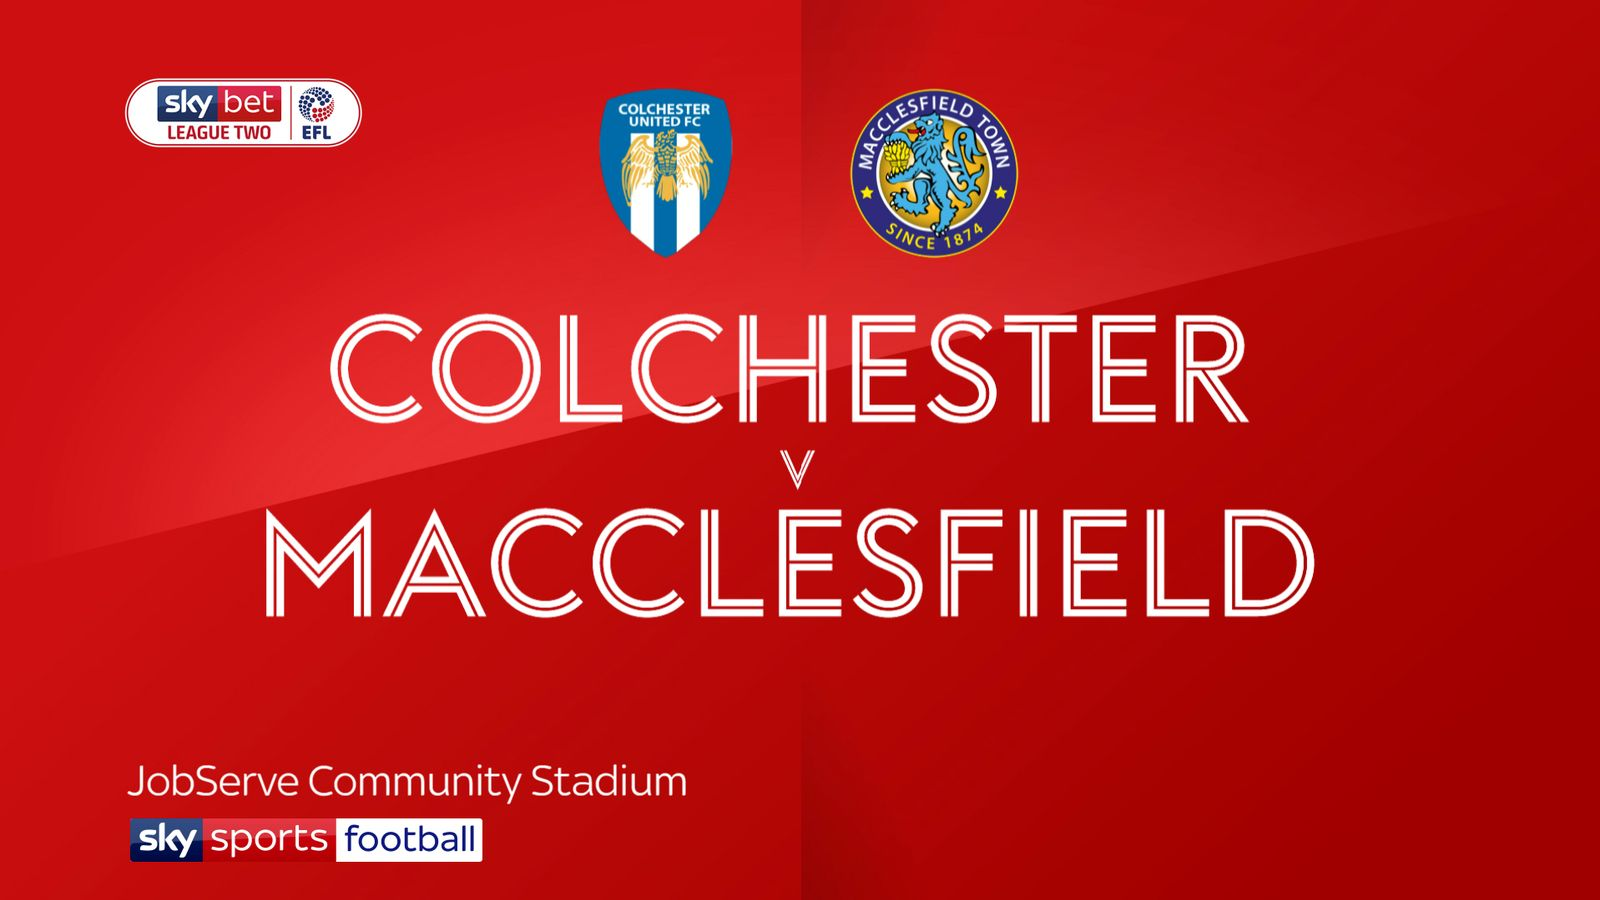 Colchester 2-1 Macclesfield: Mark Kennedy's first game as Town boss ends in defeat